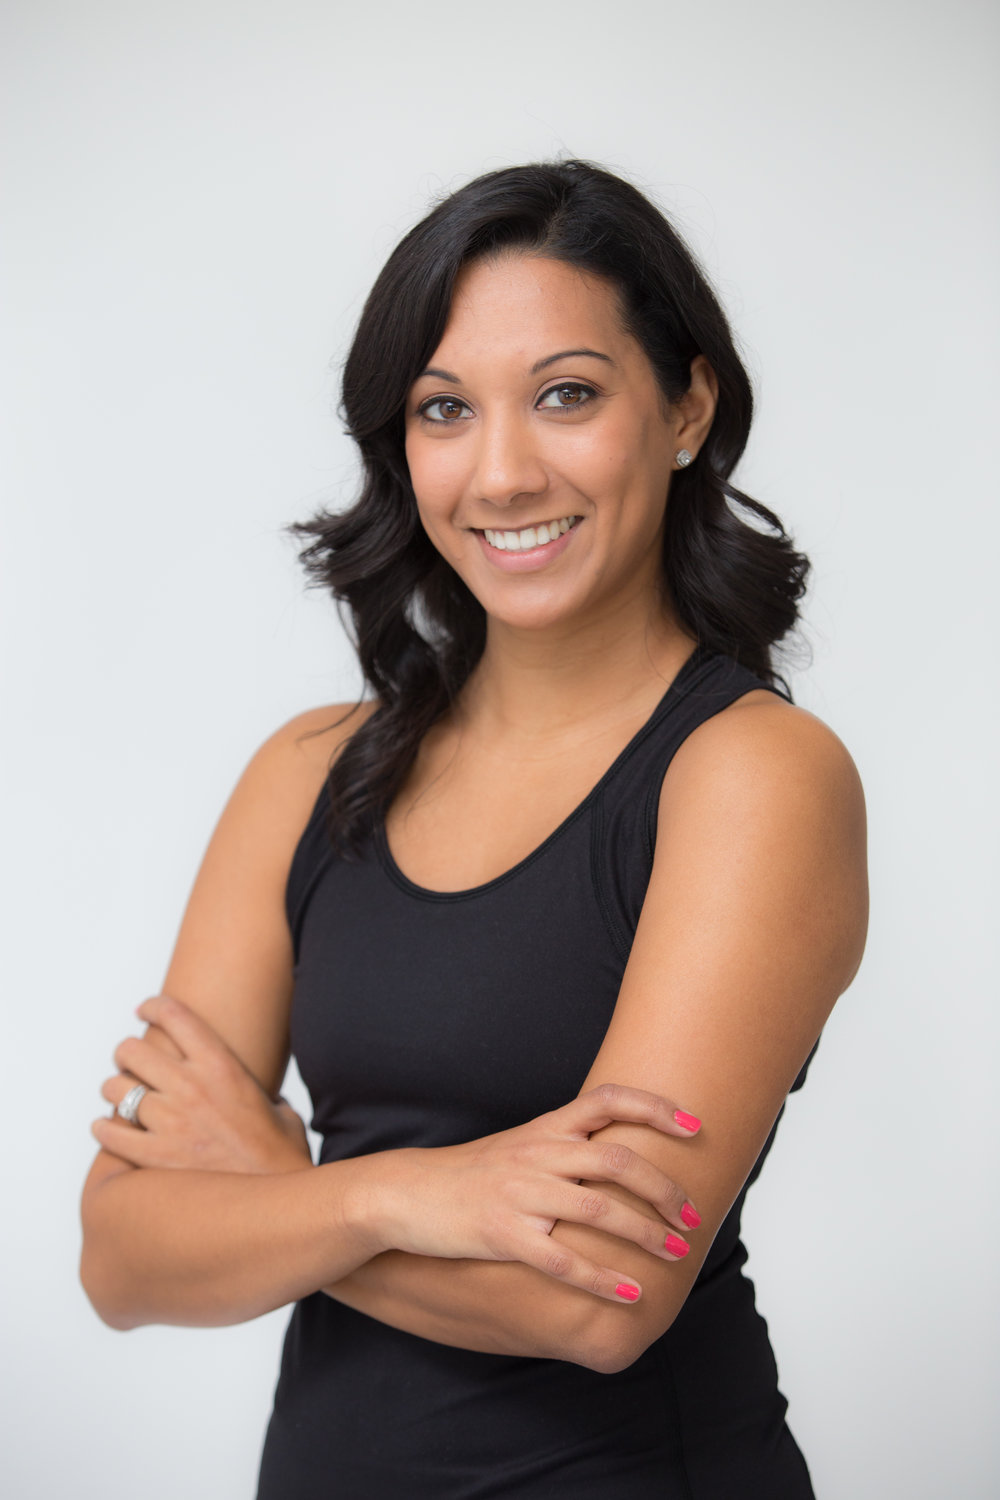 Alyssa Provitt  - Pilates InstructorAlyssa moved to Houston from Florida in 2014 with husband, Larry for an amazing career opportunity.  They have a 4lb teacup Yorkie named Gio (who is the sweetest most adorable pup EVER!)  Alyssa has always been a lover of the outdoors, sports, fitness and health.  She played on a travel volleyball team through high school and college.  After being introduced to Pilates, her life was changed. Through her Pilates practice she gained better posture, stronger leaner muscles, and was able to de-stress.  Alyssa is Reformer certified through Balanced Body and she is also a certified personal trainer. When Alyssa is not teaching, she loves to travel and spend quality time with her family.